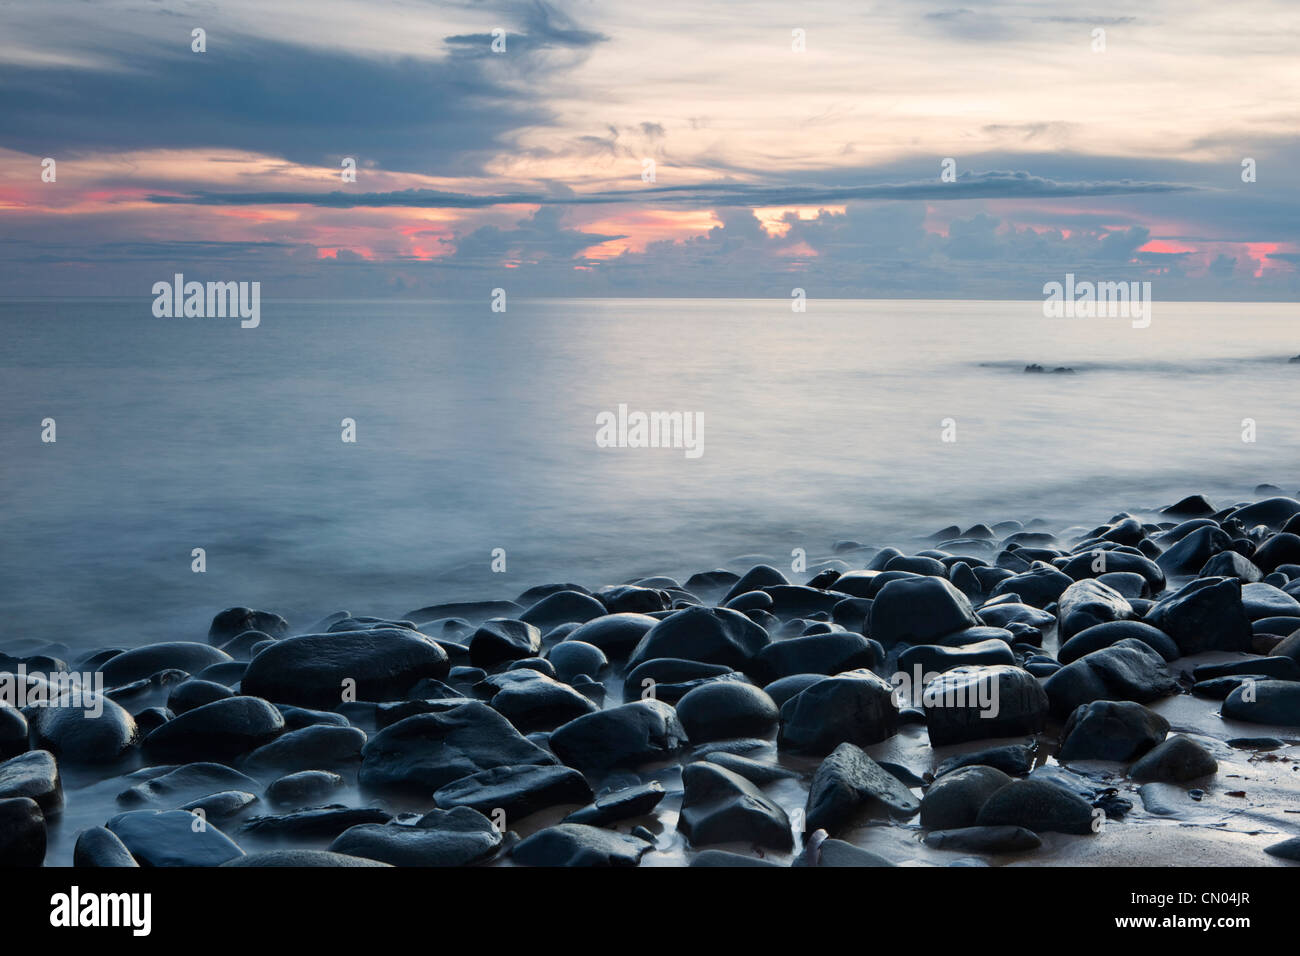 Waves lapping rocks at Pebbly Beach at dawn, near Cairns, Queensland, Australia - Stock Image